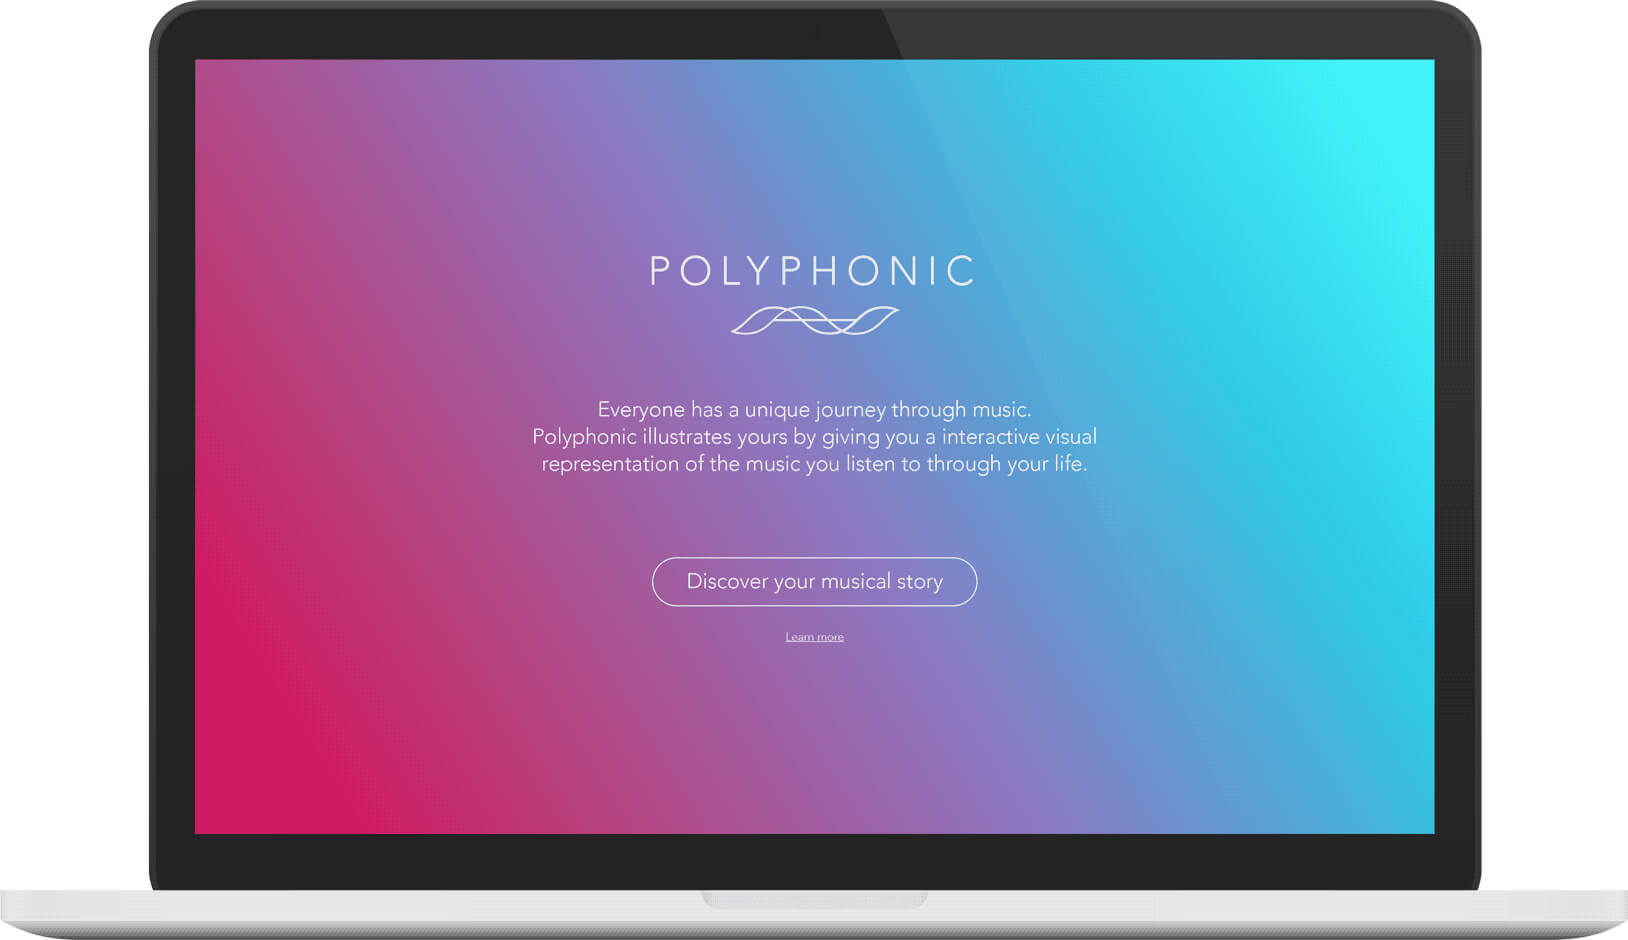 Polyphonic website splash screen